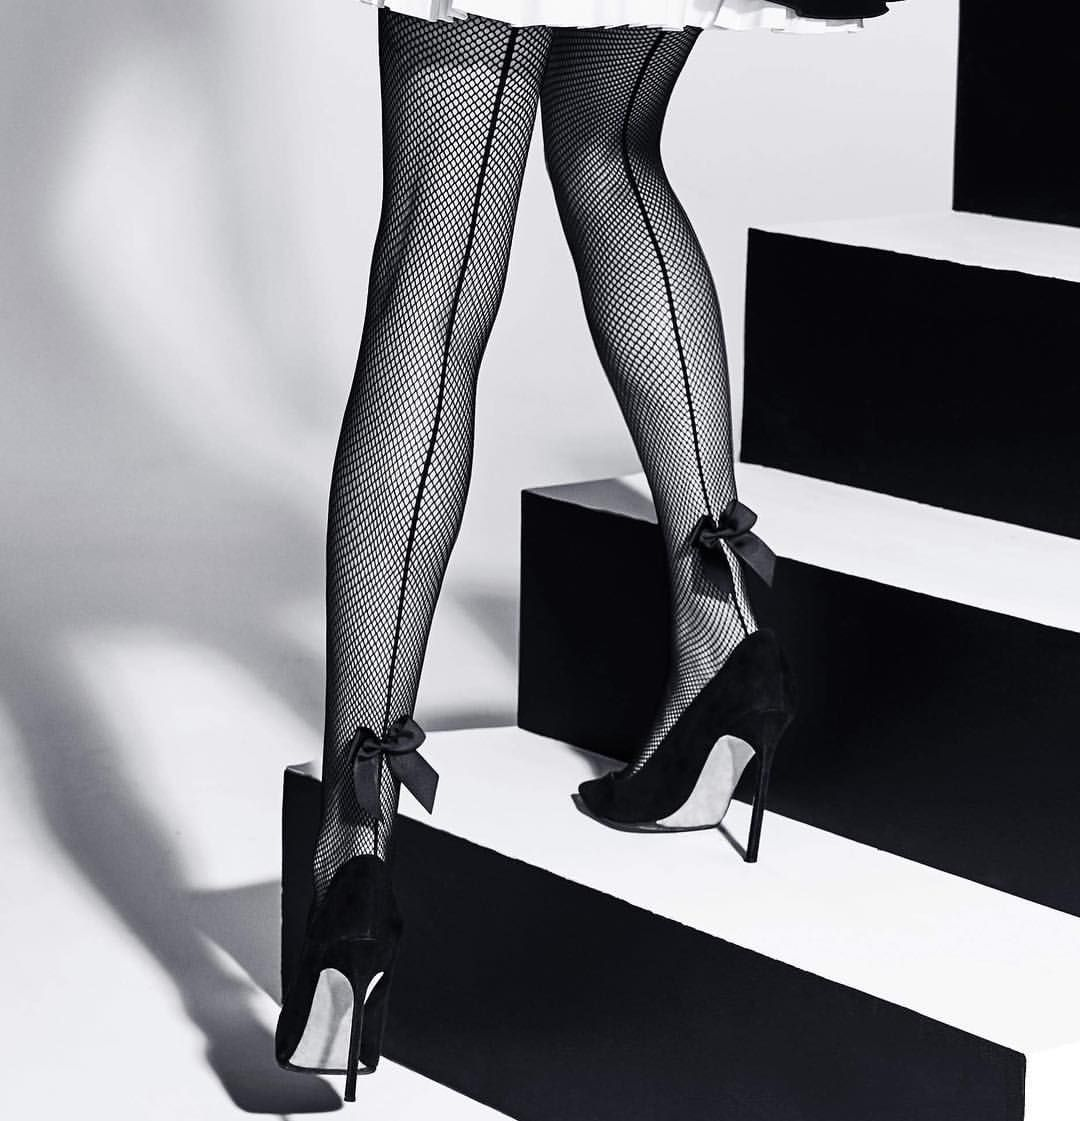 bc7b92fd8 We are only one step closer to fashion perfection!  Tights MODC1338    Calzedonia  ItalianLegwear